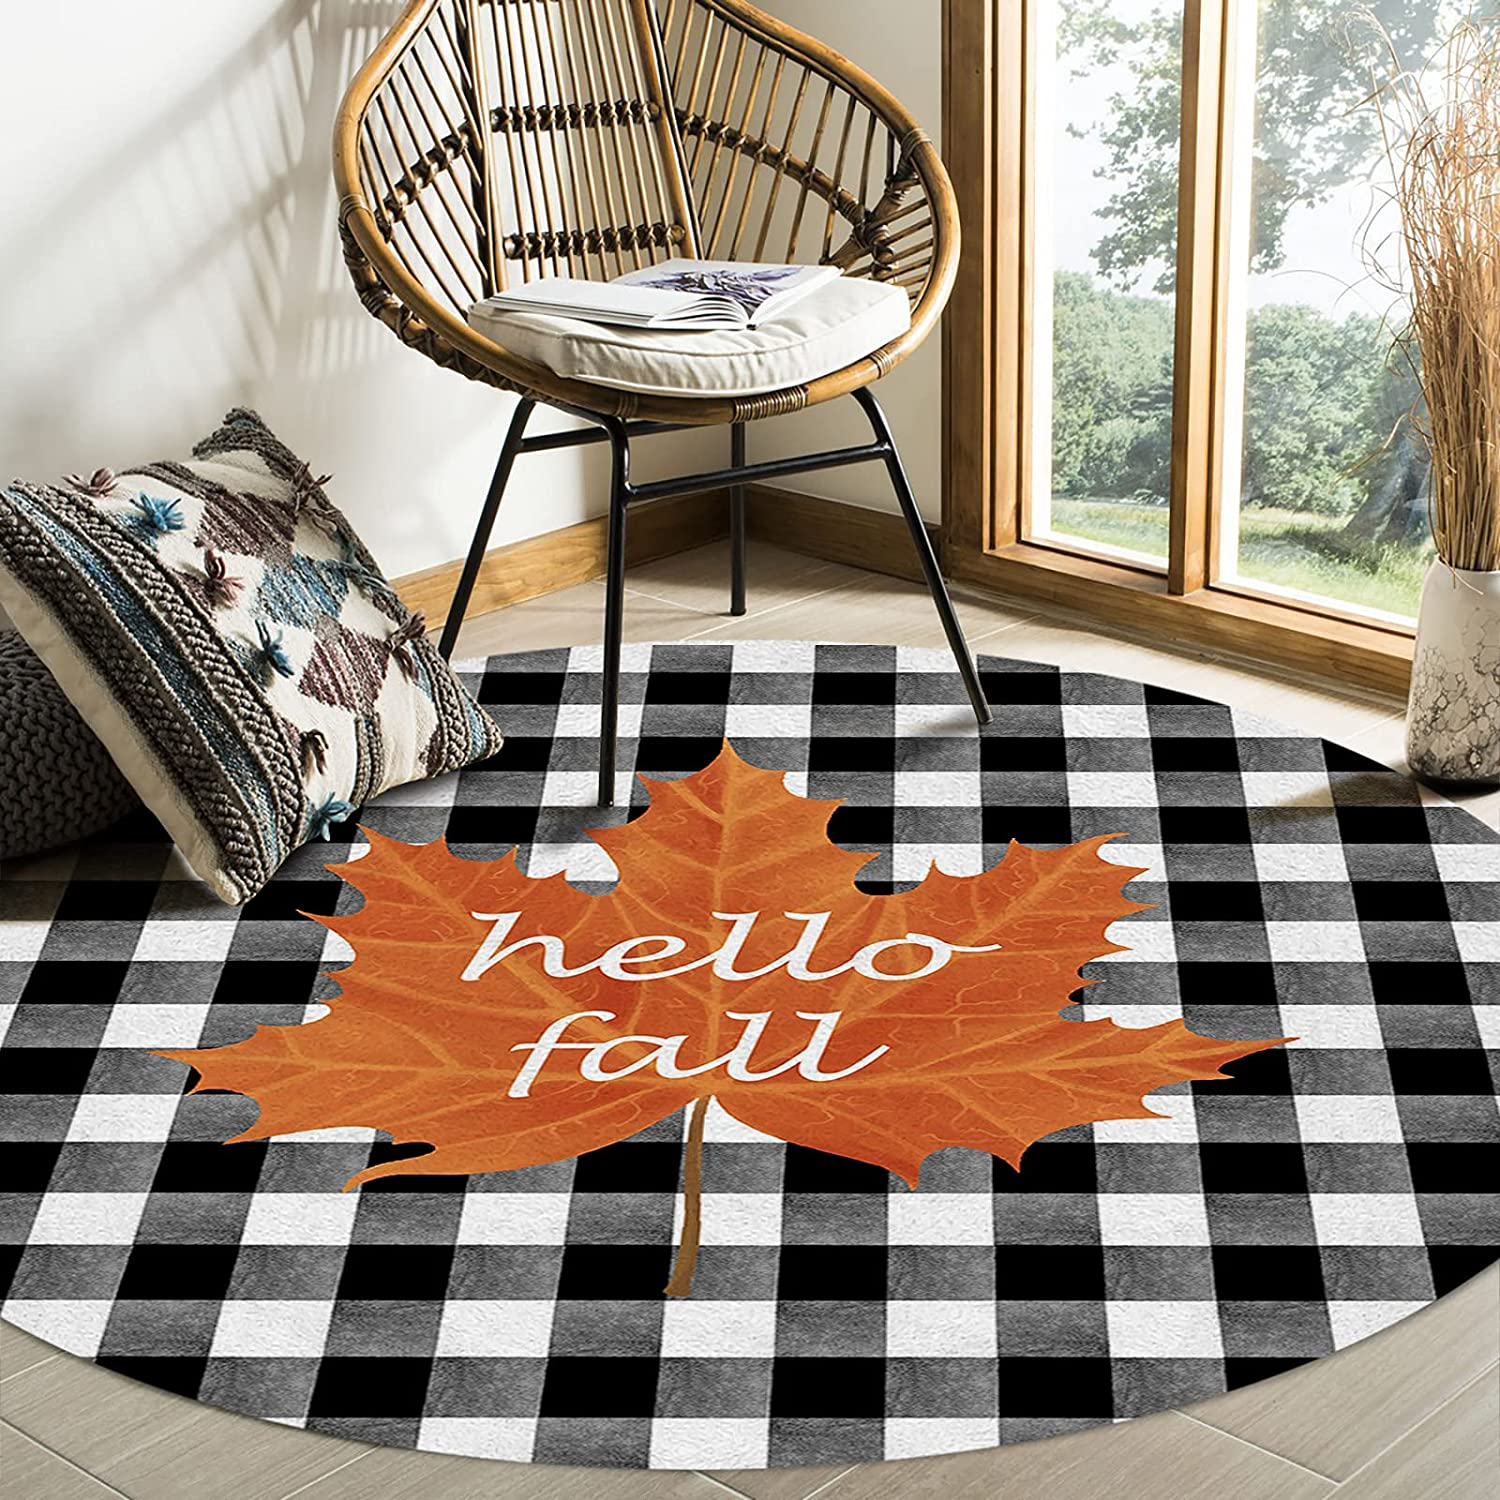 OFFicial store Felt Area Rugs Stain Proof Louisville-Jefferson County Mall Carpets for Room Hello Living Bedroom